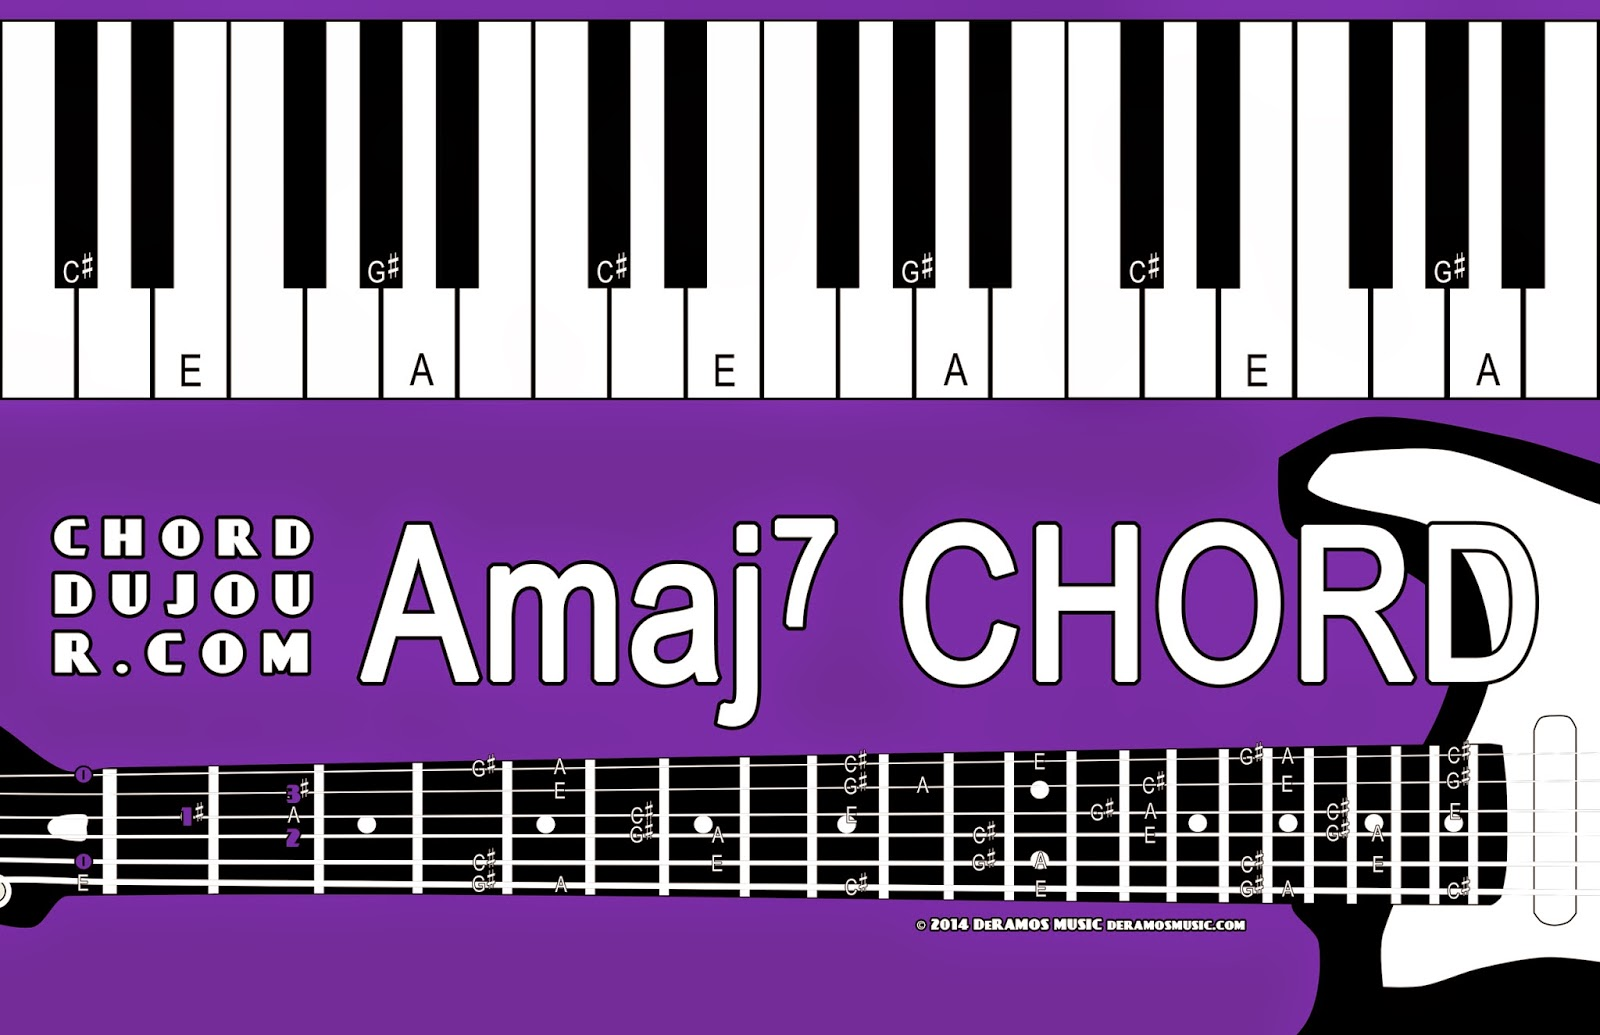 Chord Du Jour November 2014 The Symble A7 Above A Bar It Means We Have To Play Guitarists And Keyboardists Difference Between Major 7th Dominant Is One Note Compare Amaj7 With Spot